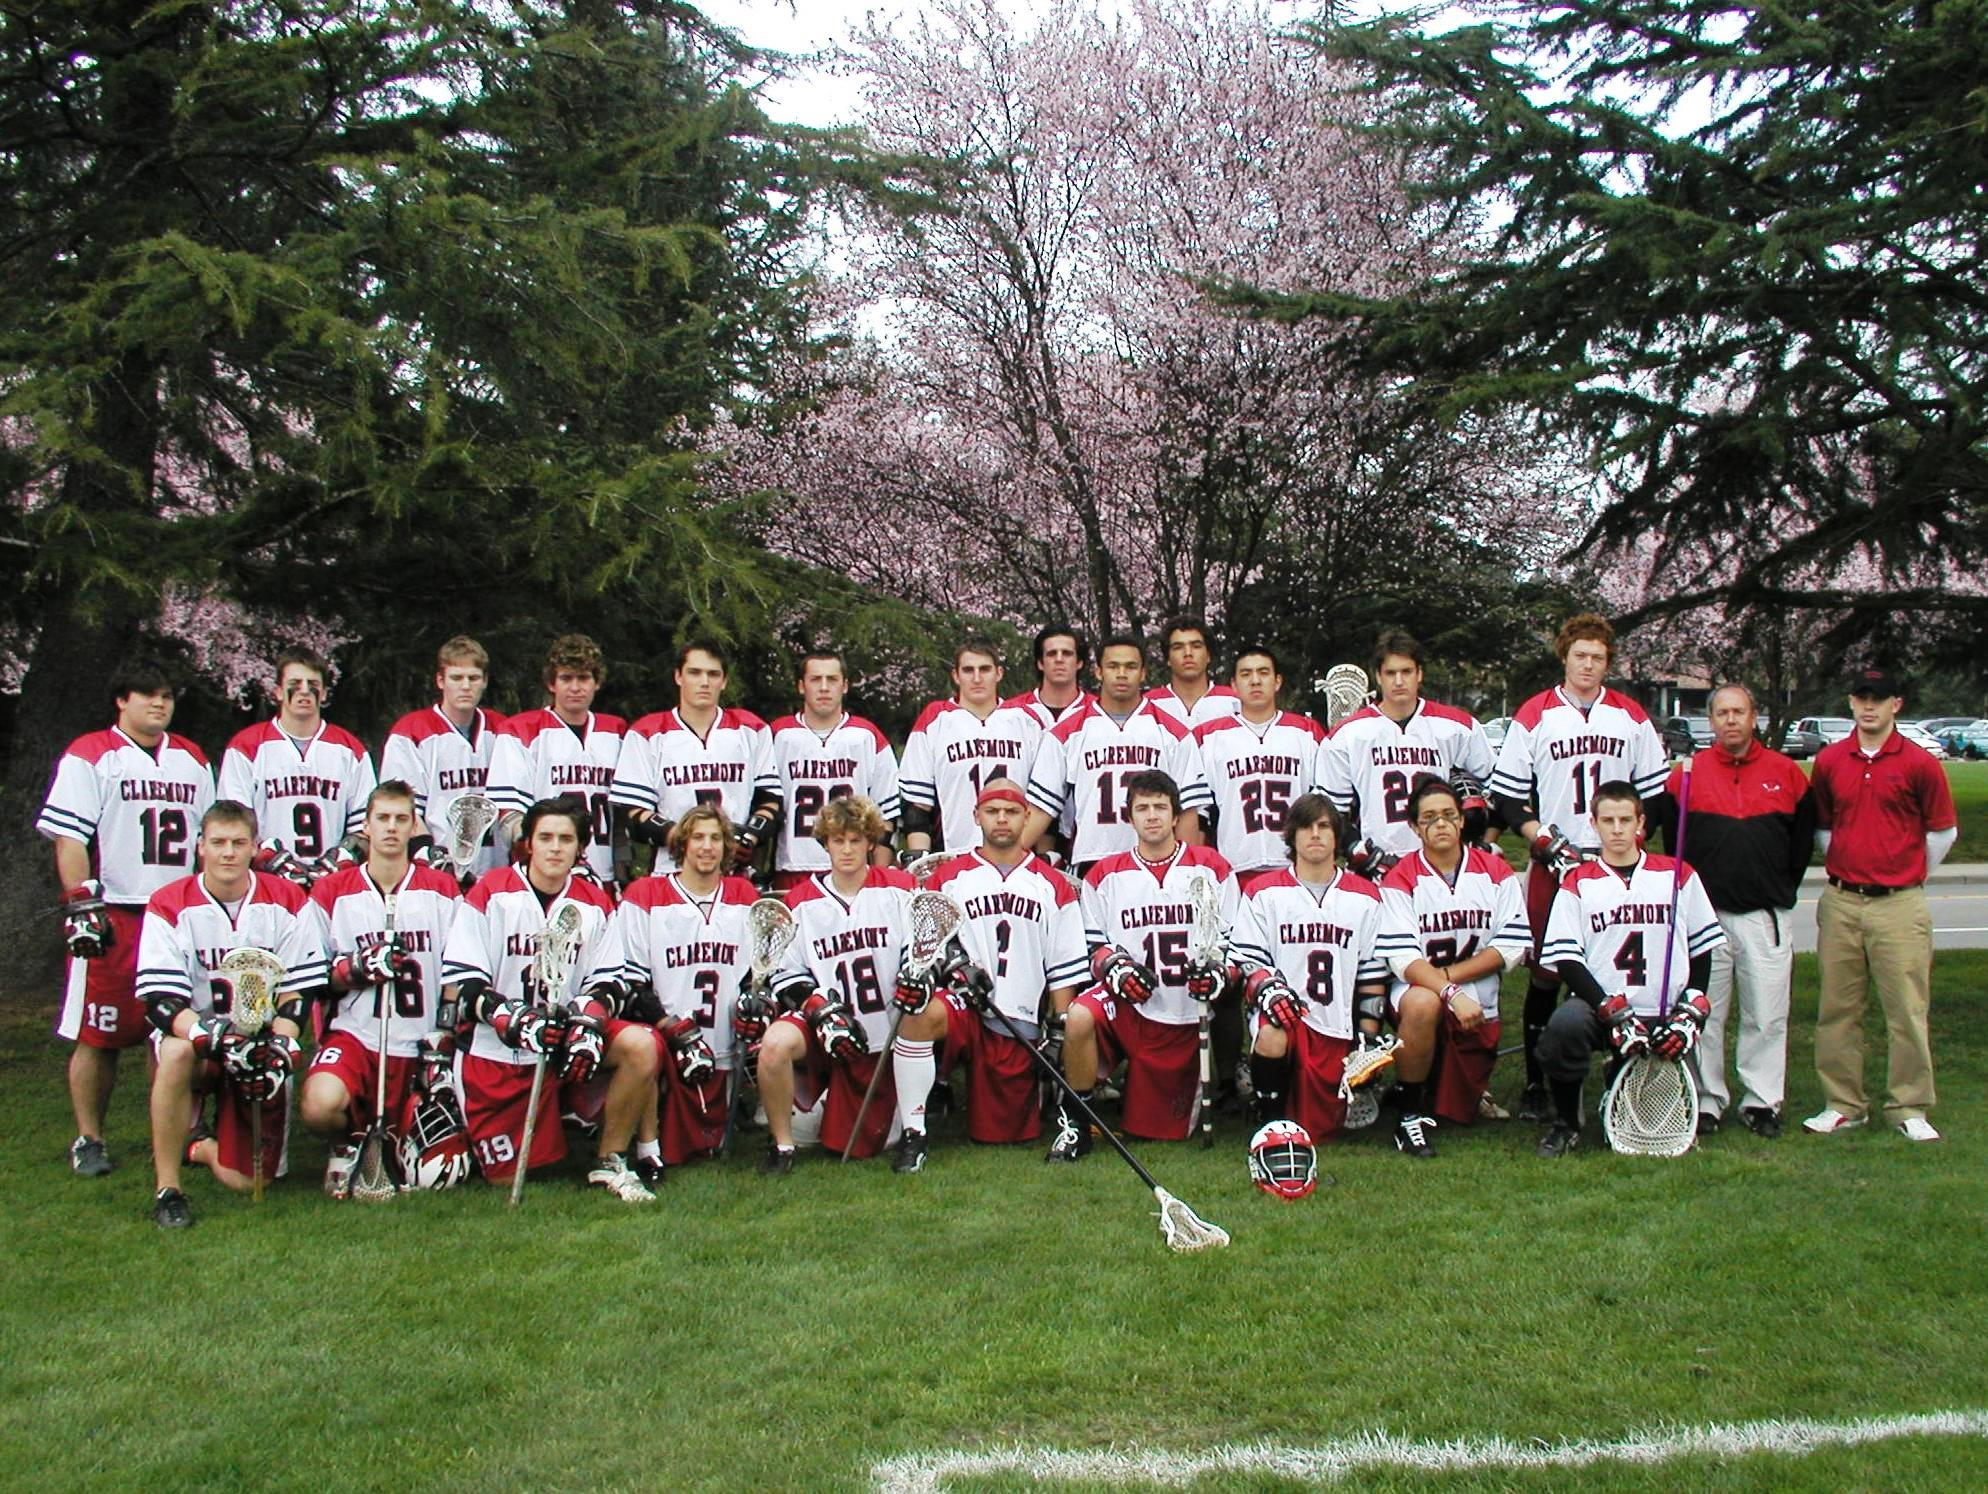 Cougars 2005